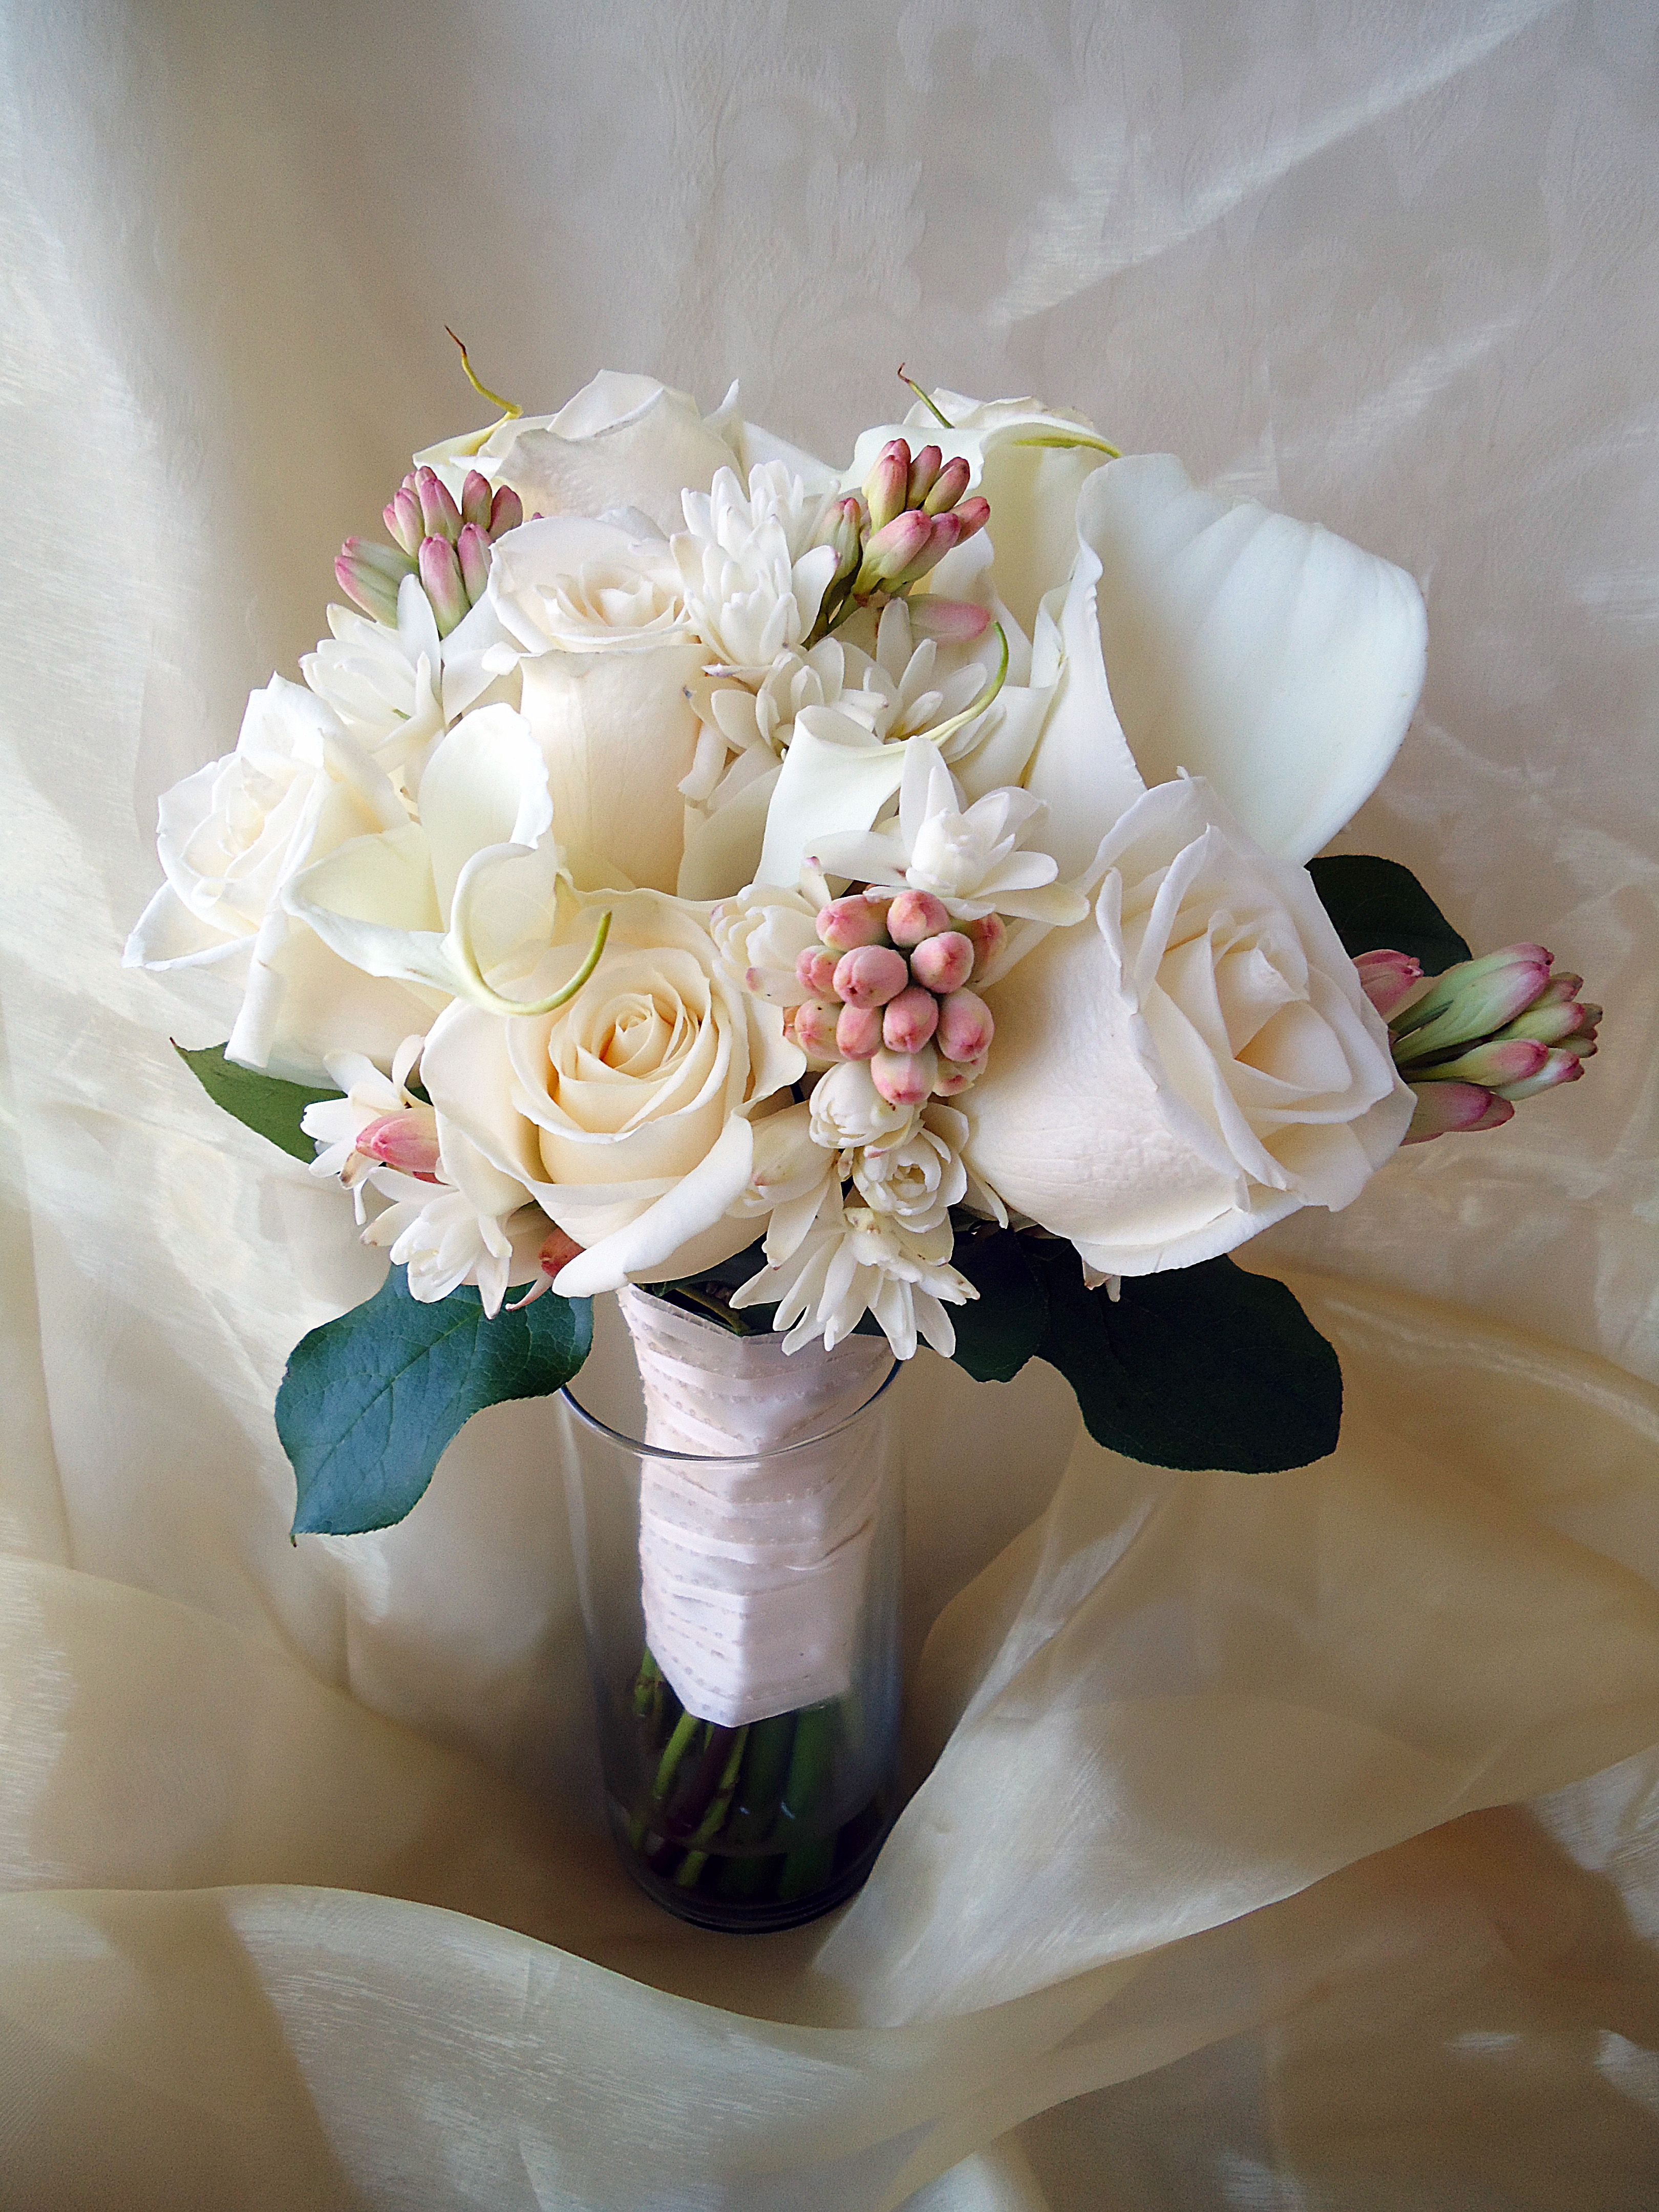 san diego wedding flowers: elegant bridal bouquet with white